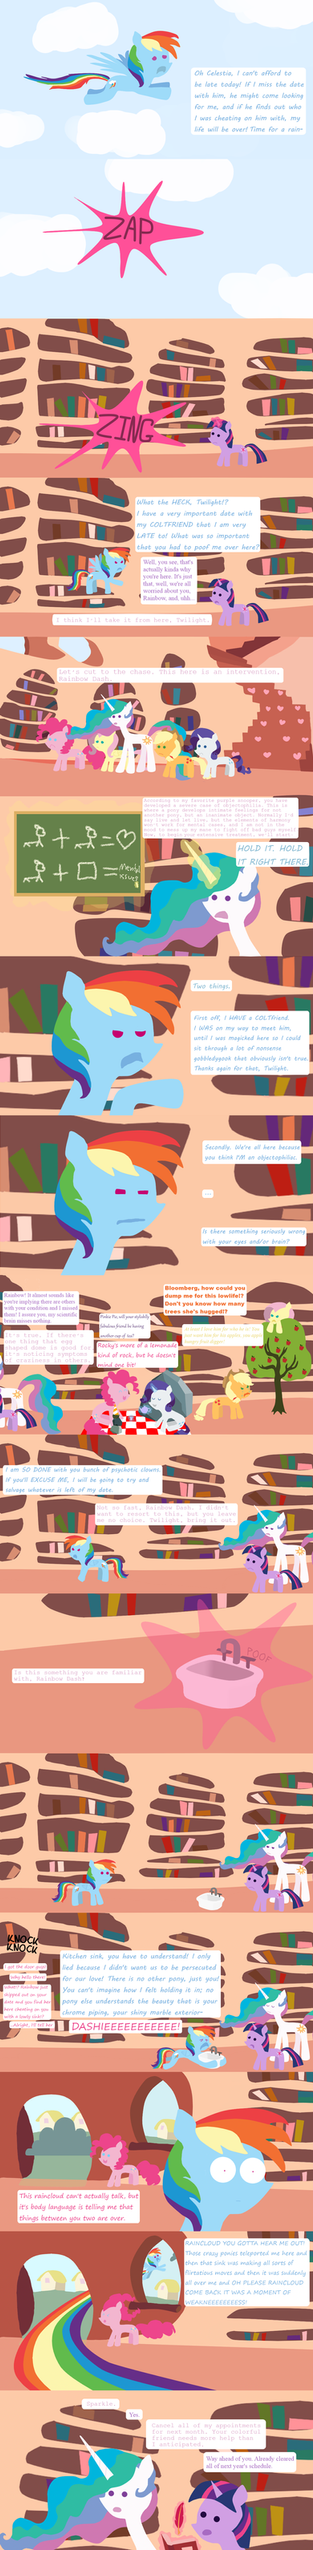 A Colorful Love Life by unassuminguser